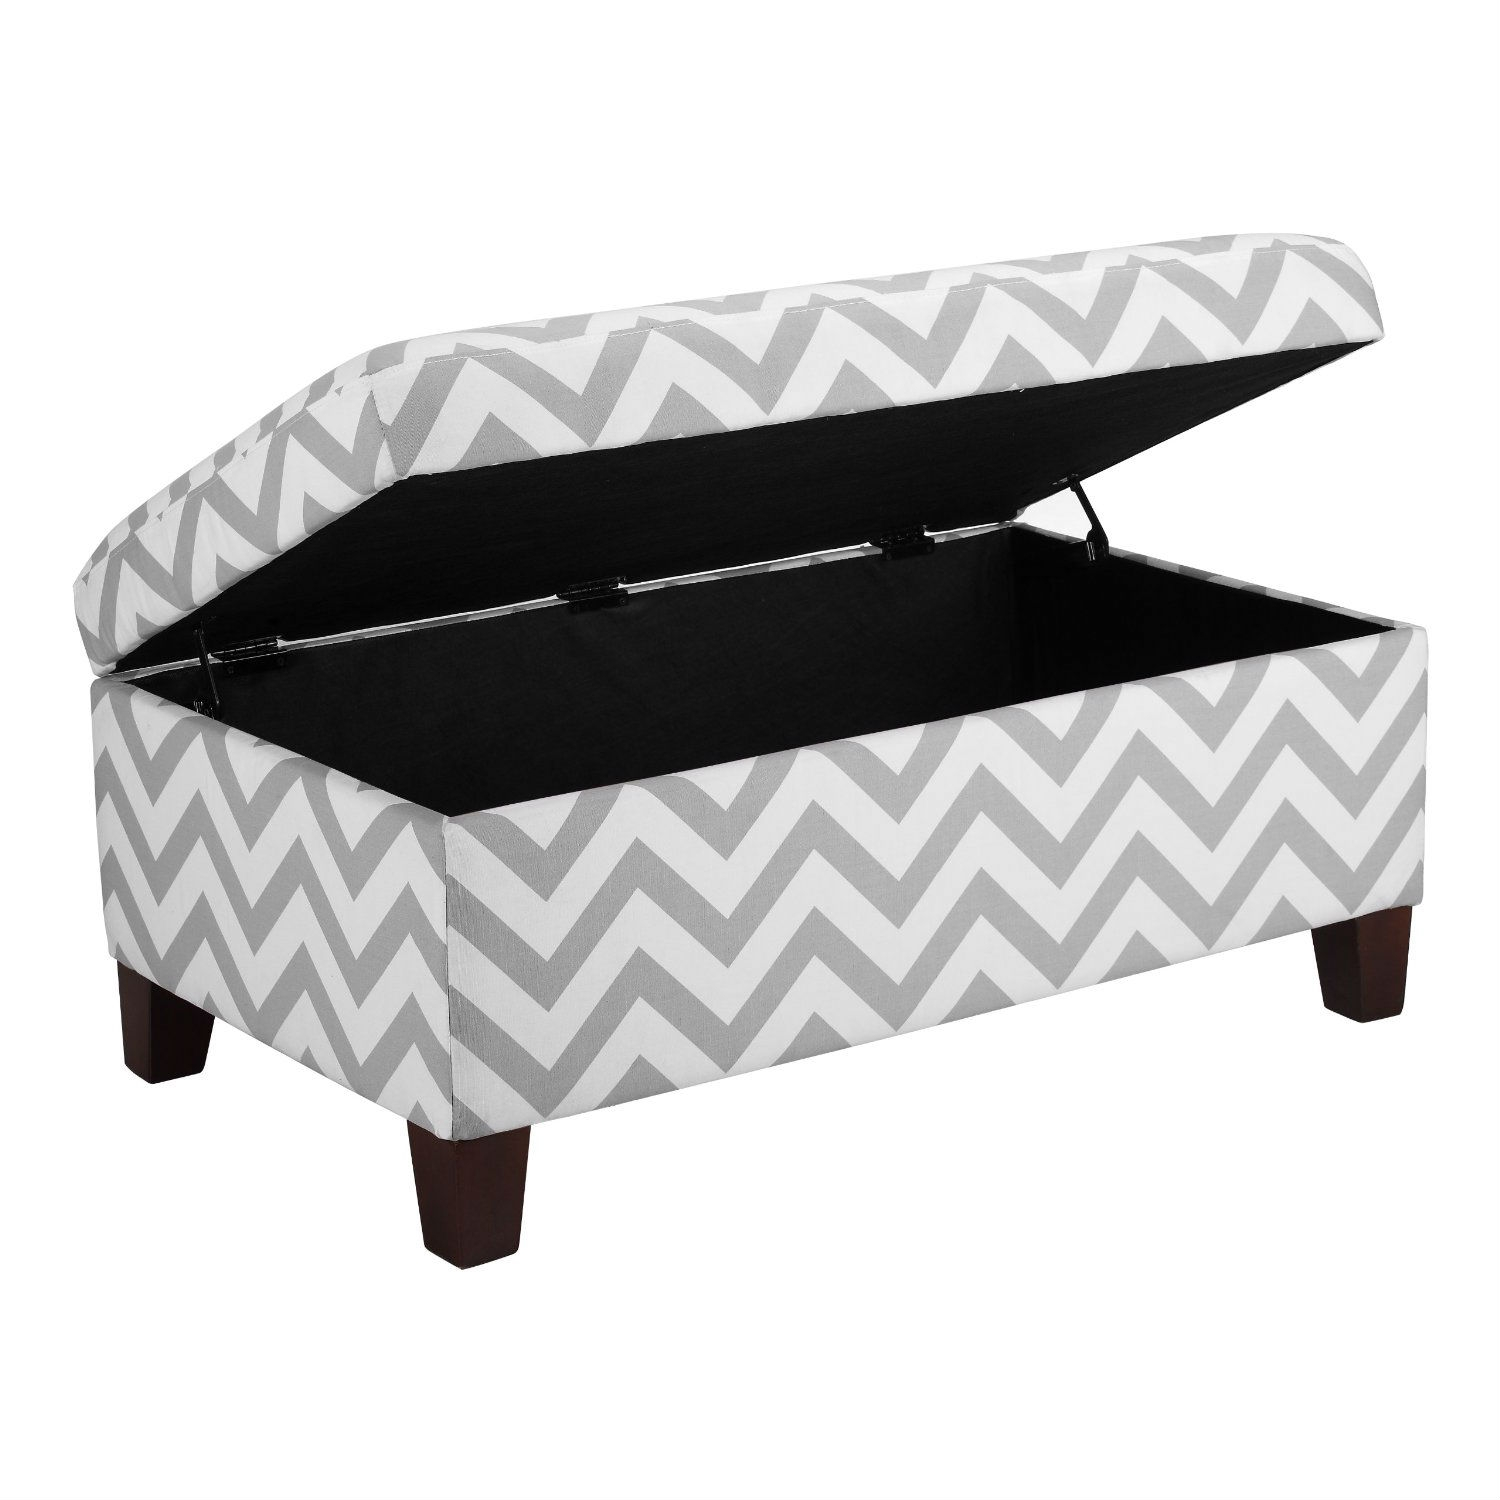 Grey & White Chevron Stripe Padded Storage Ottoman Bench, DACSO9951 :  Whether it be to hide away clutter in the room or to kick up your heels at the end of the day, this Grey & White Chevron Stripe Padded Storage Ottoman Bench is a practical and stylish storage solution. The grey and white Chevron Storage Ottoman offers a trendy look and livens up any room with its bold pattern.